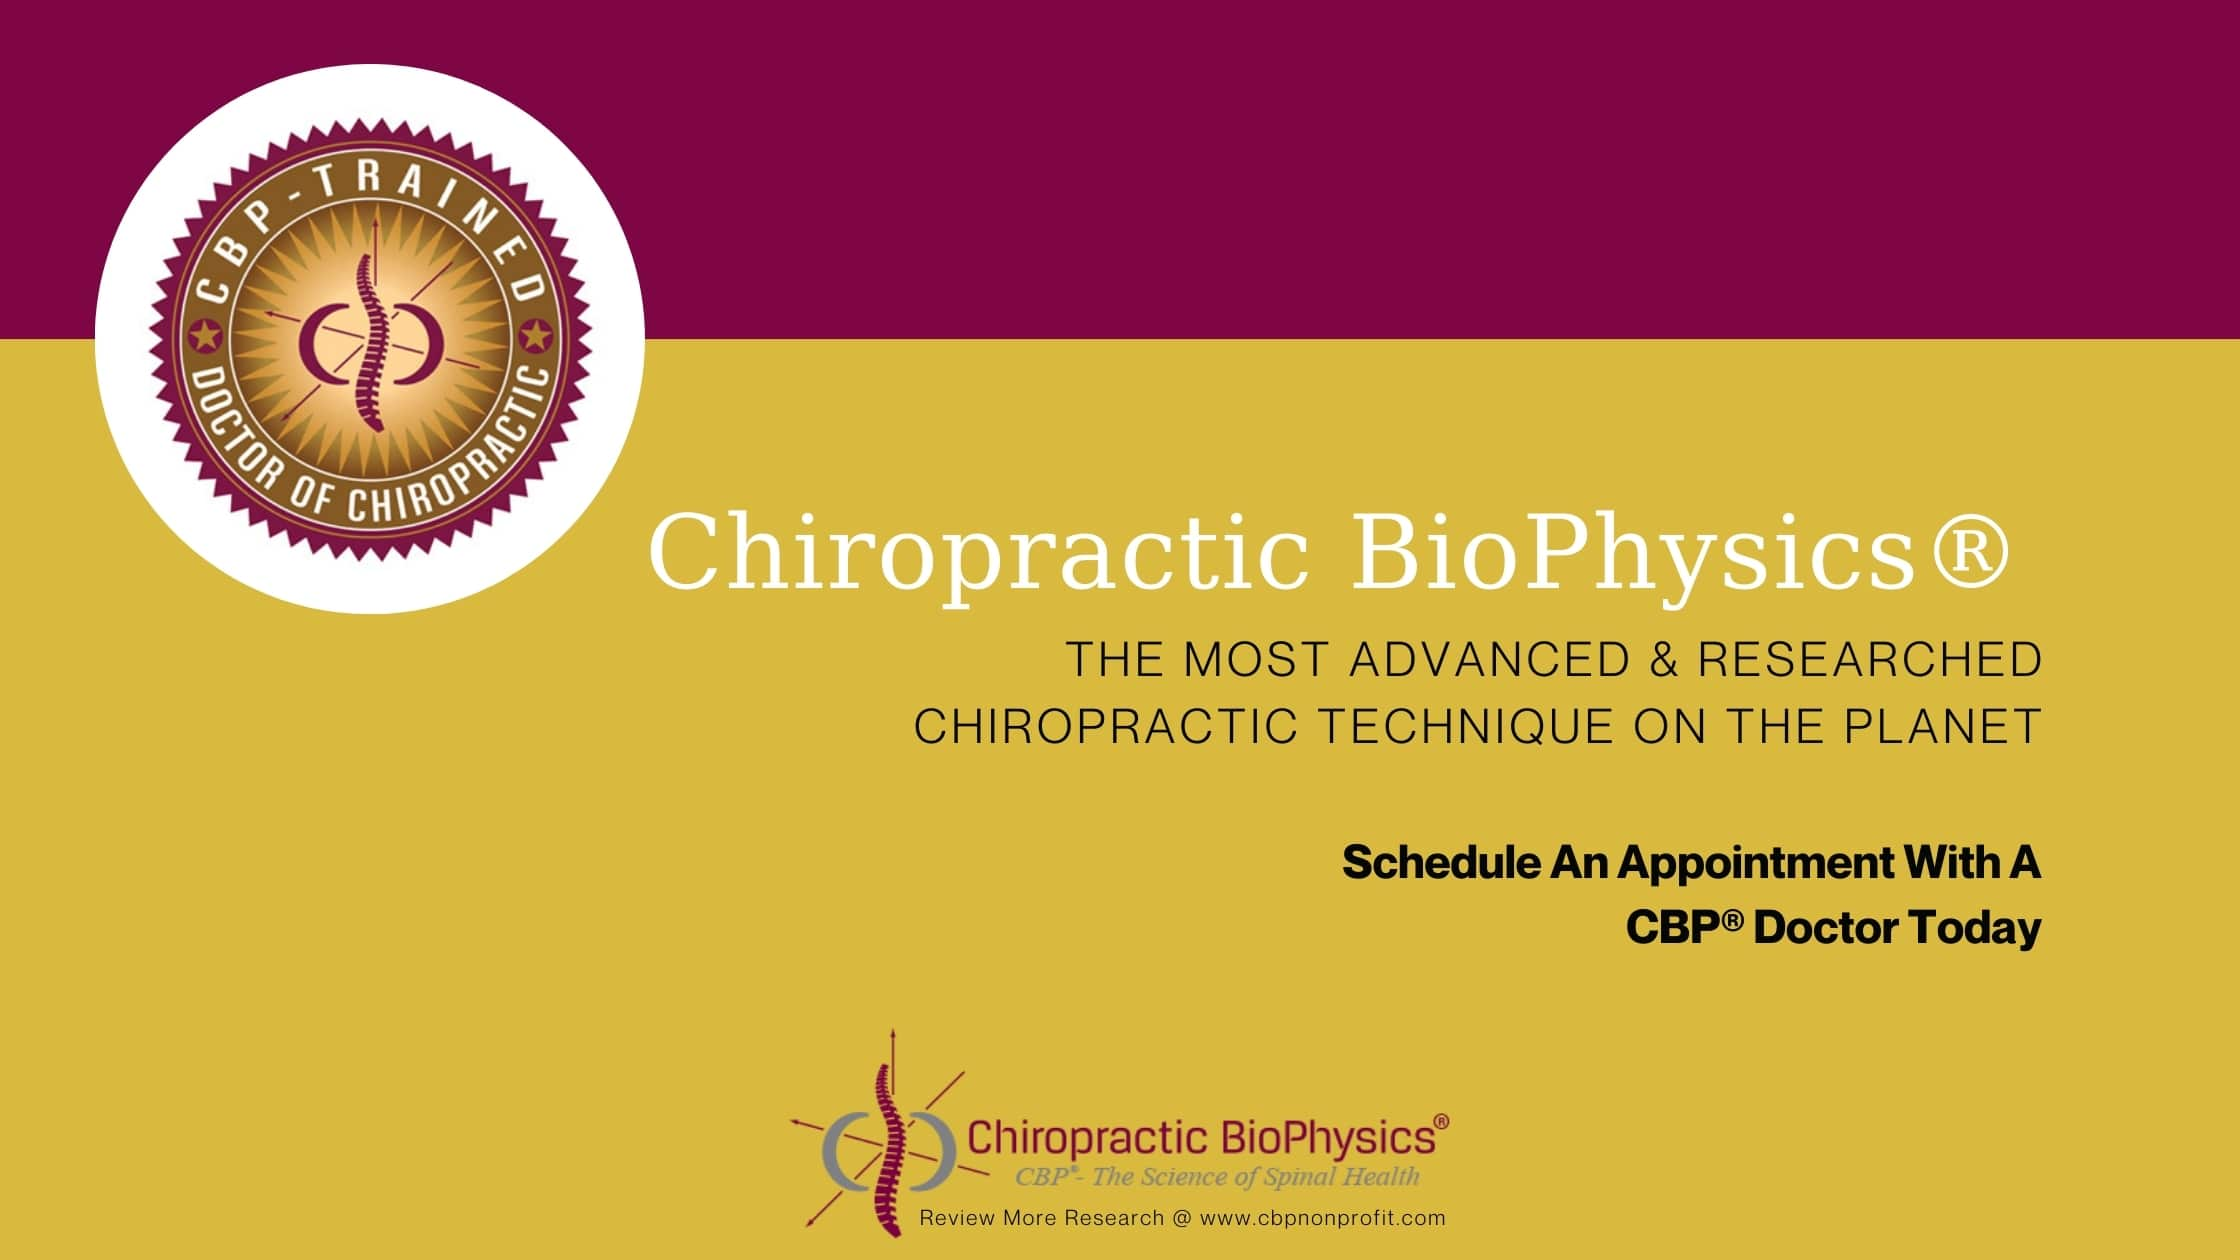 What You Need to Know About the CBP® Spine Model